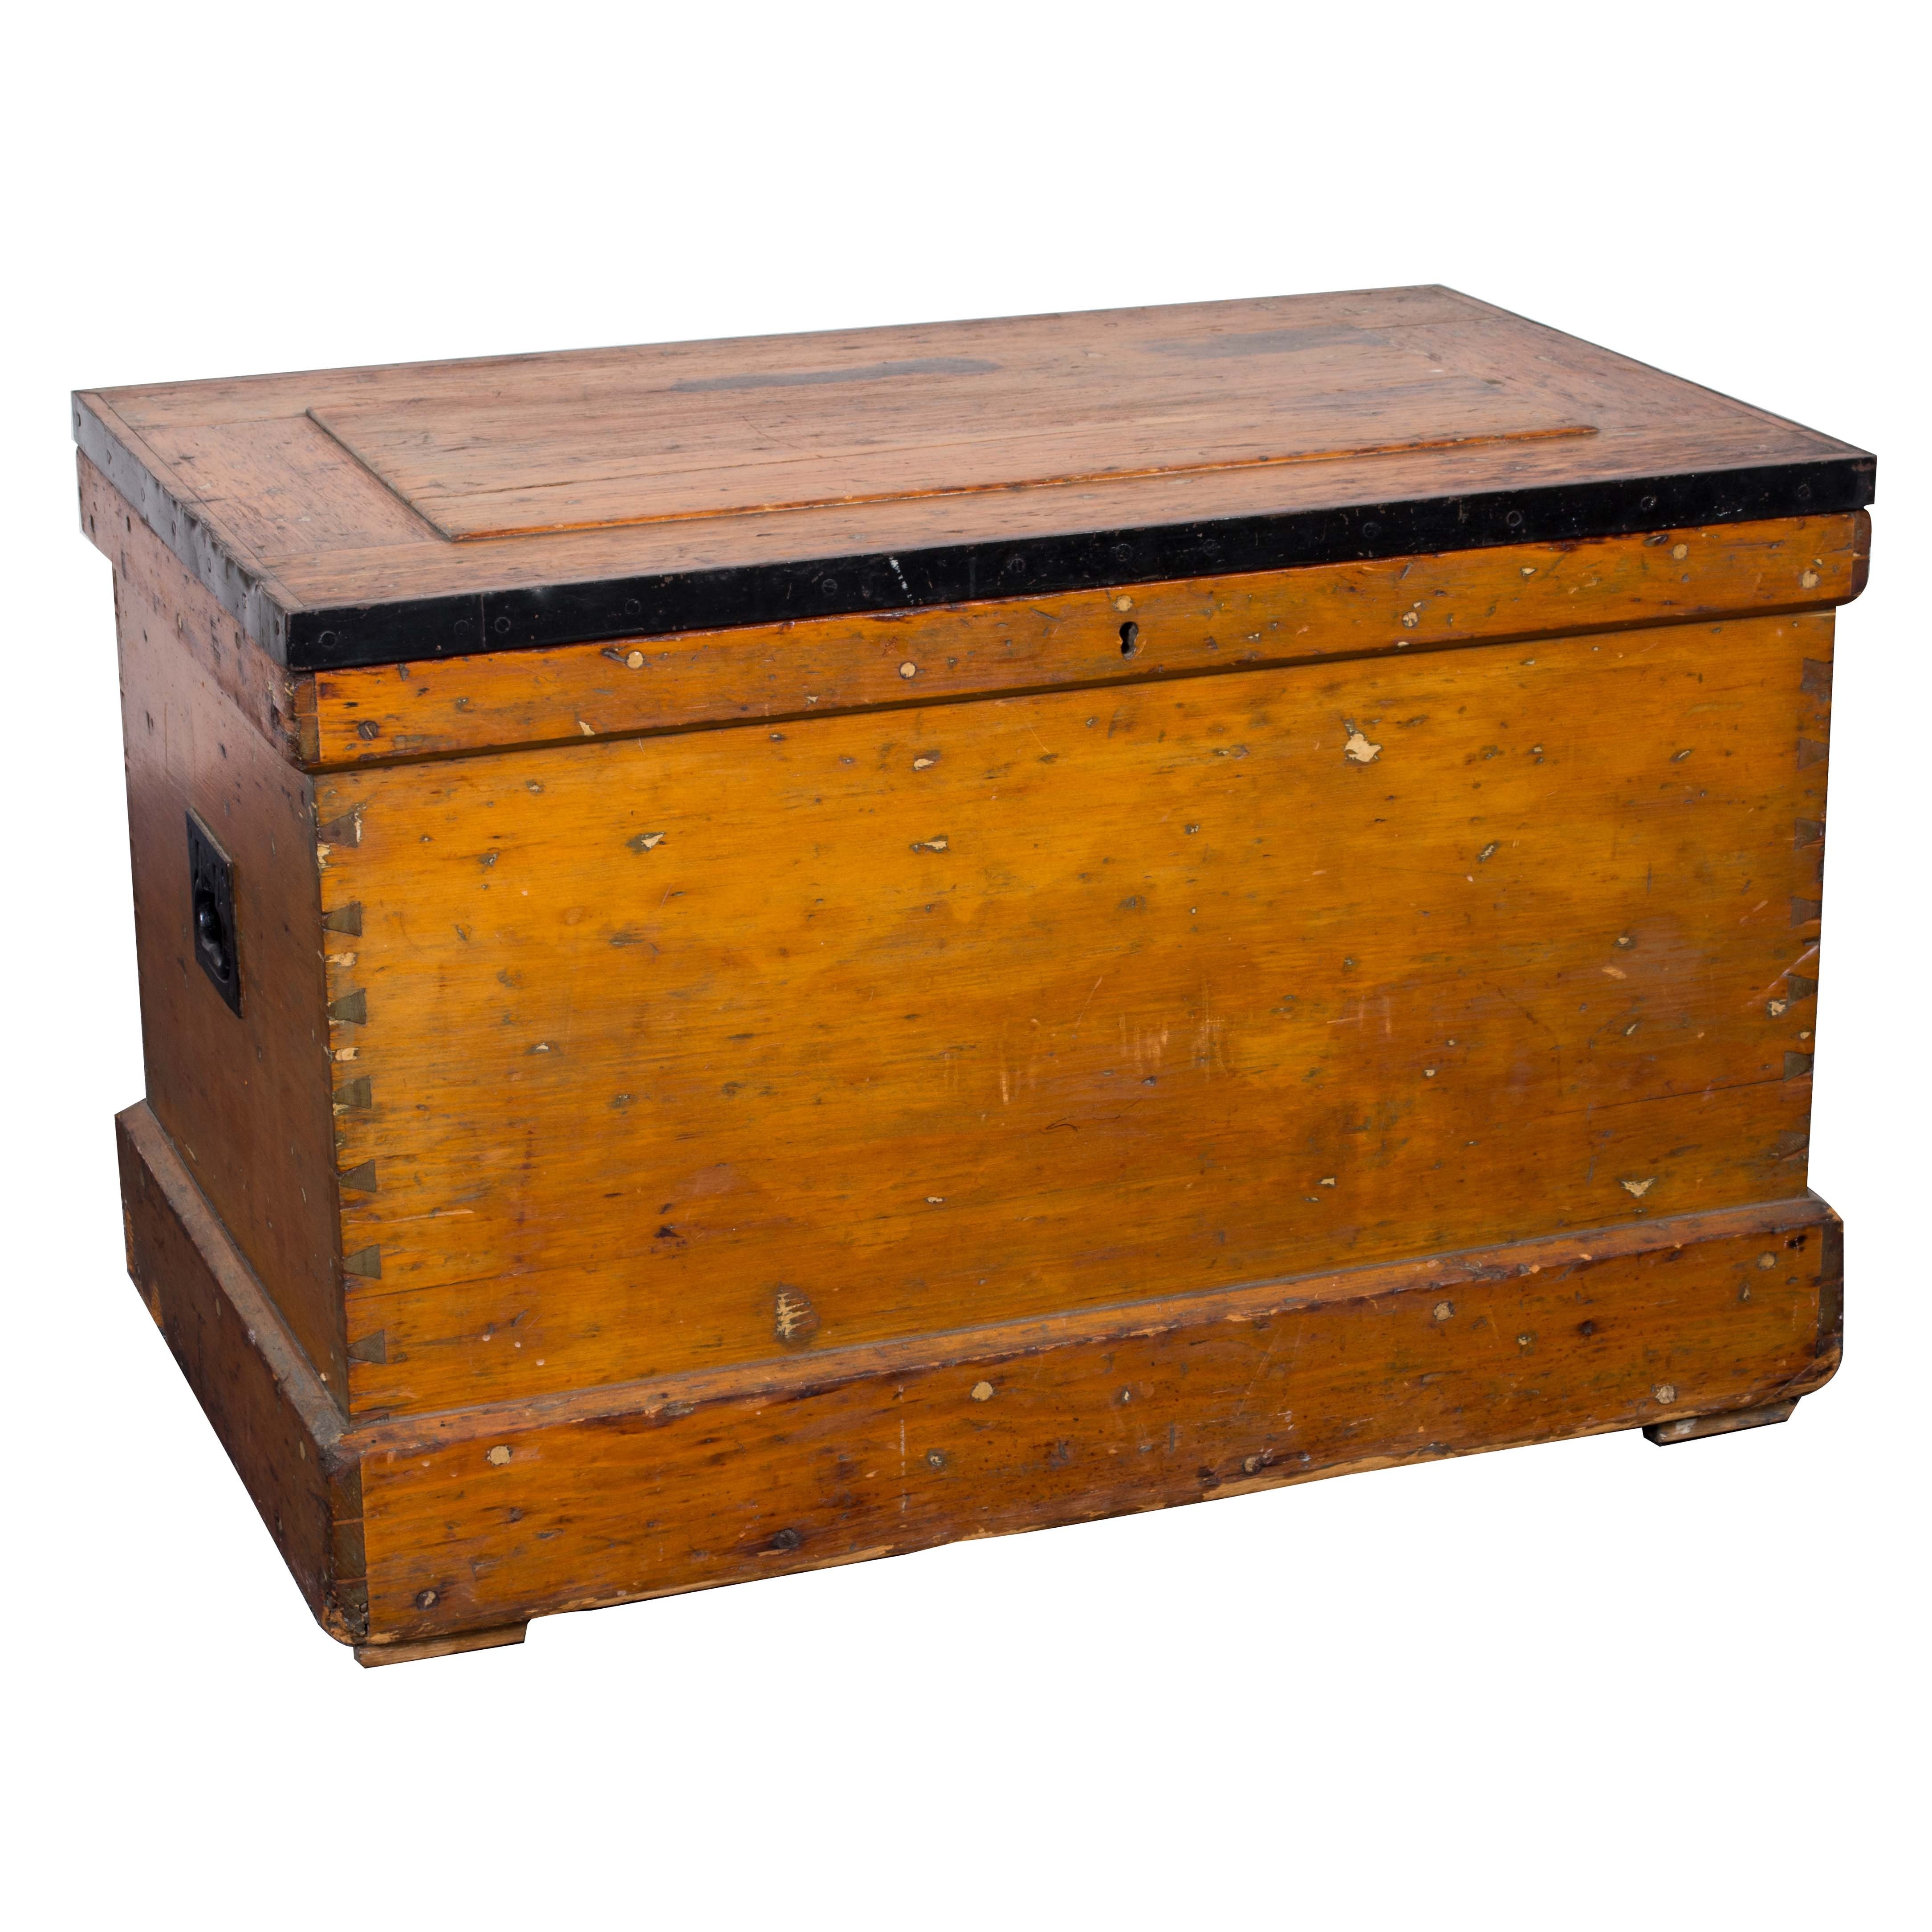 Antique Pine and Curly Maple Tool Chest